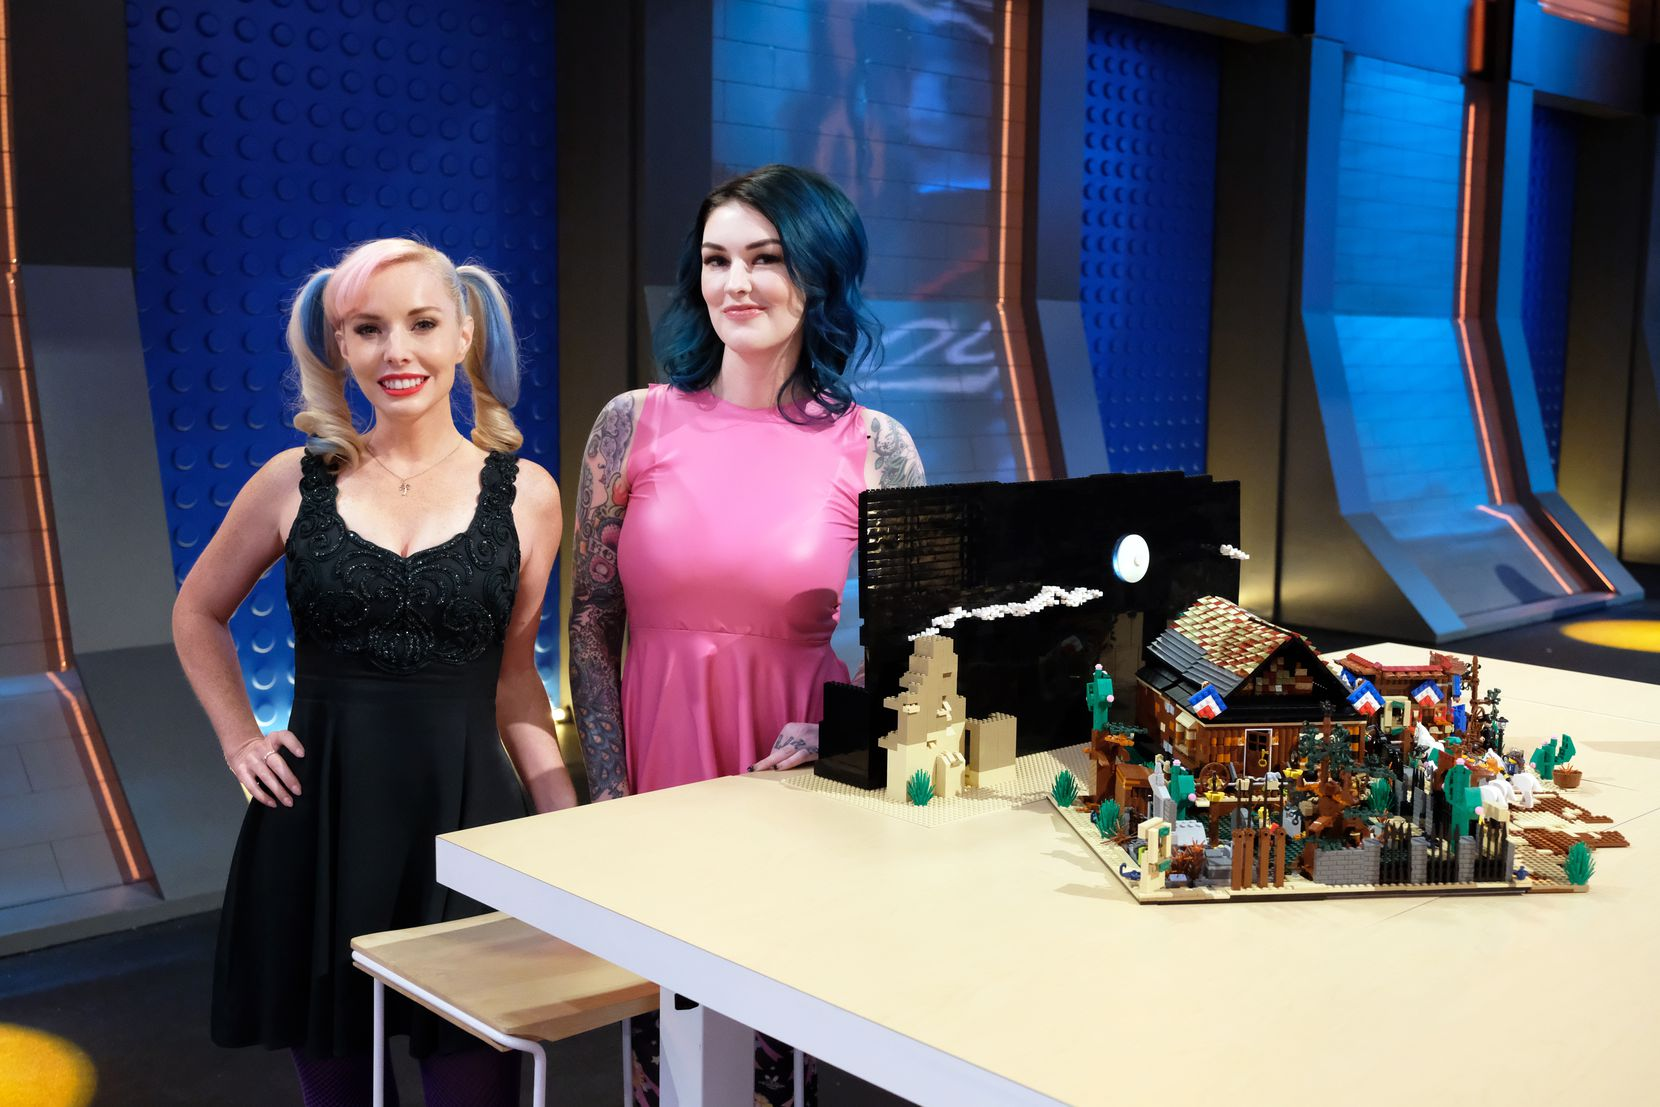 Krystle Starr (left) and Amie Dansby became friends through their mutual affection for Legos and the character costume-play artform of cosplay.